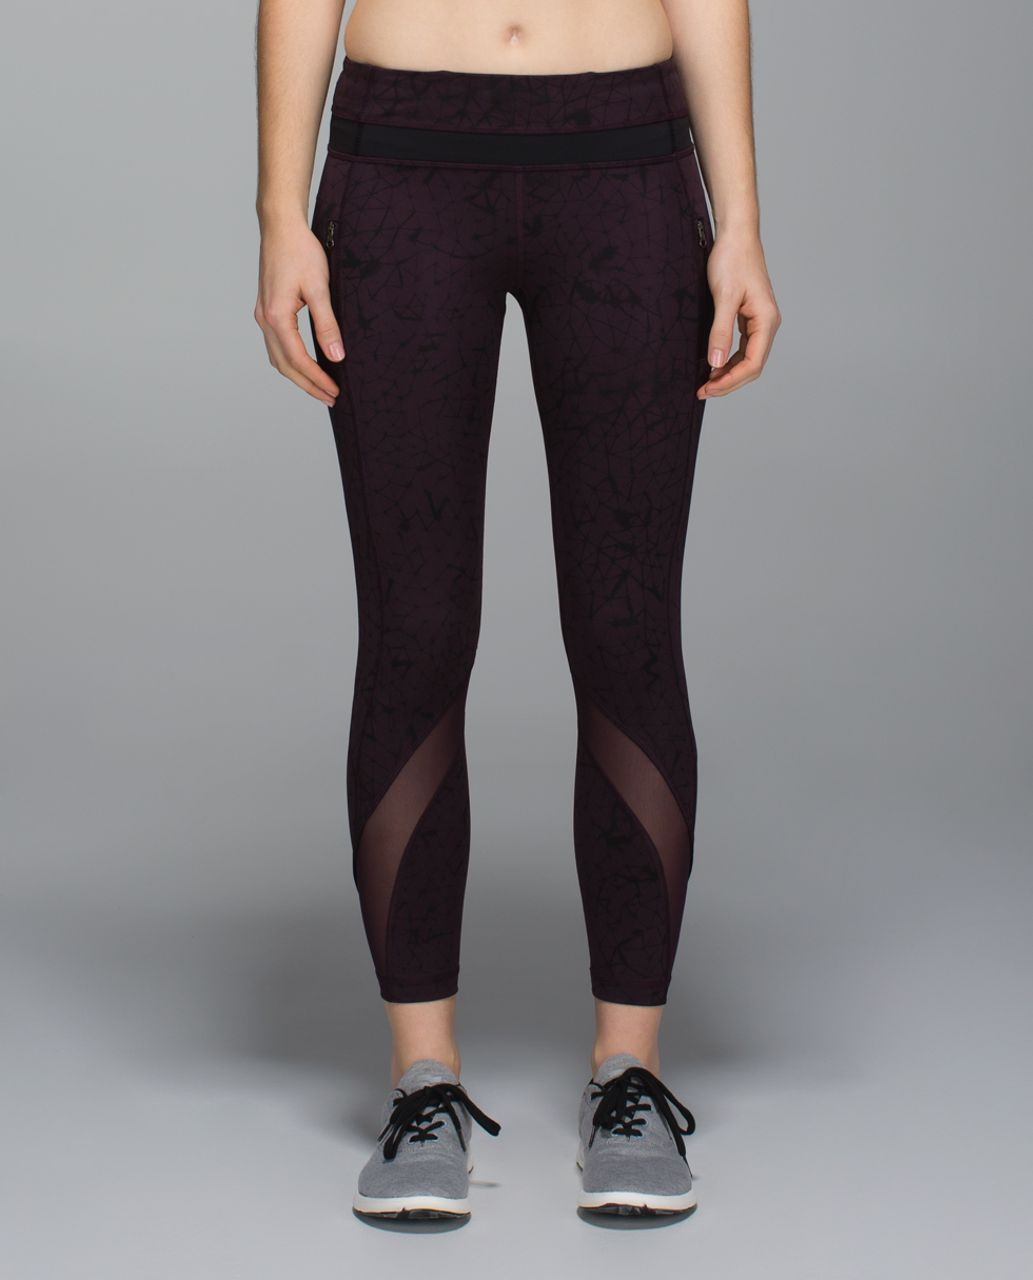 6c2c0e7666 Lululemon Inspire Tight II *Full-On Luxtreme (Mesh) - Star Crushed Black  Cherry Black / Black / Black Cherry - lulu fanatics